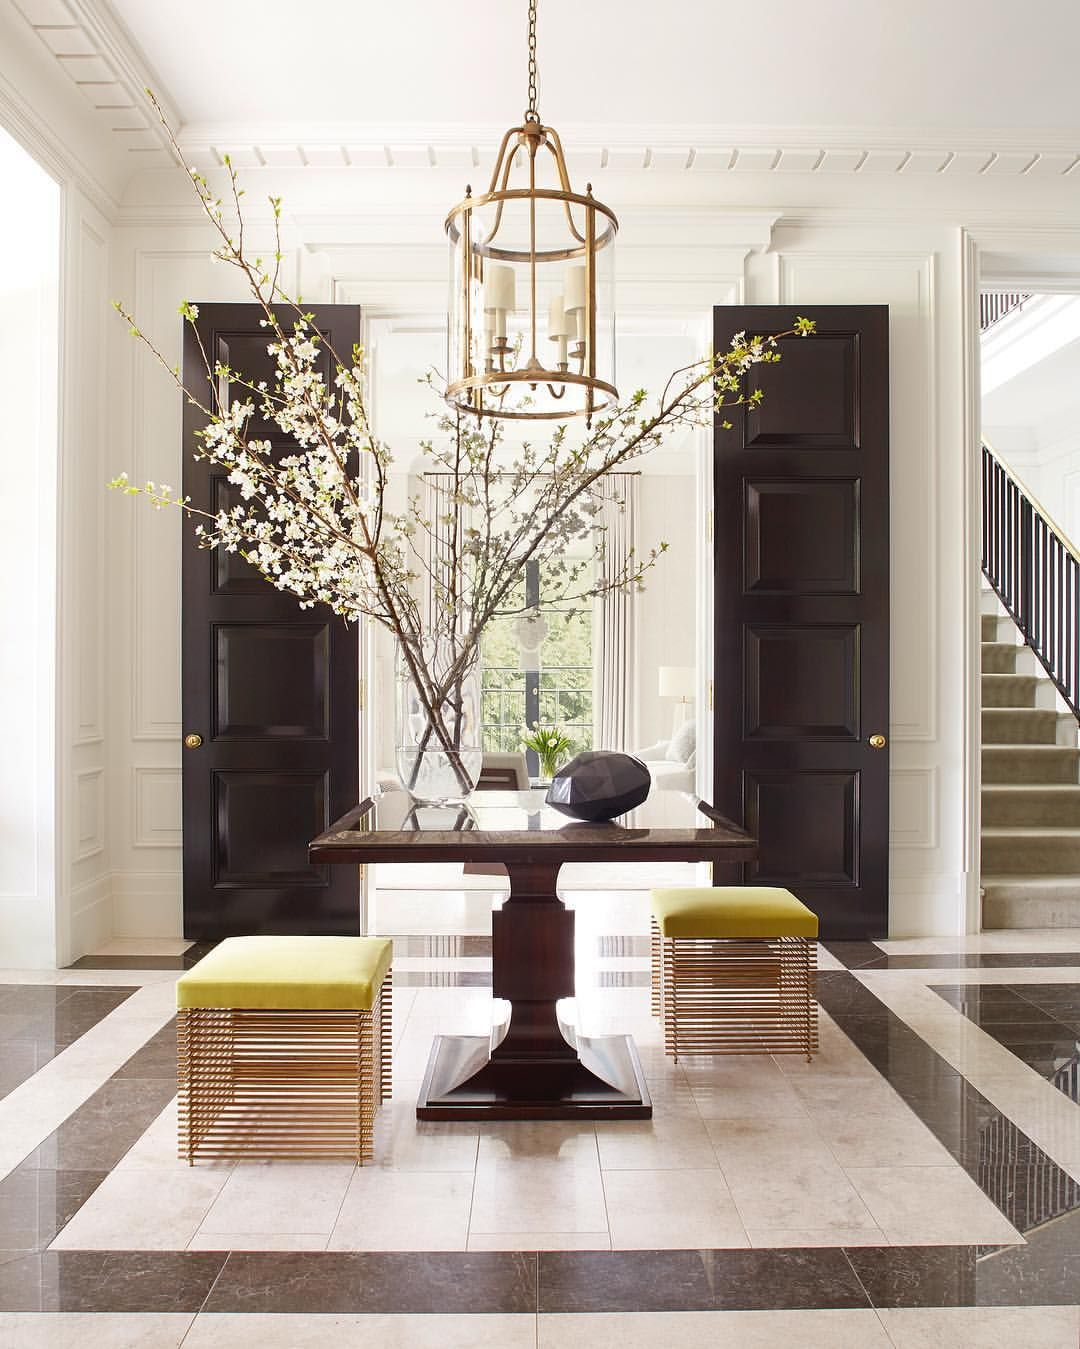 Pin By Elisabetta Pulitano On Furniture Favourites In 2019